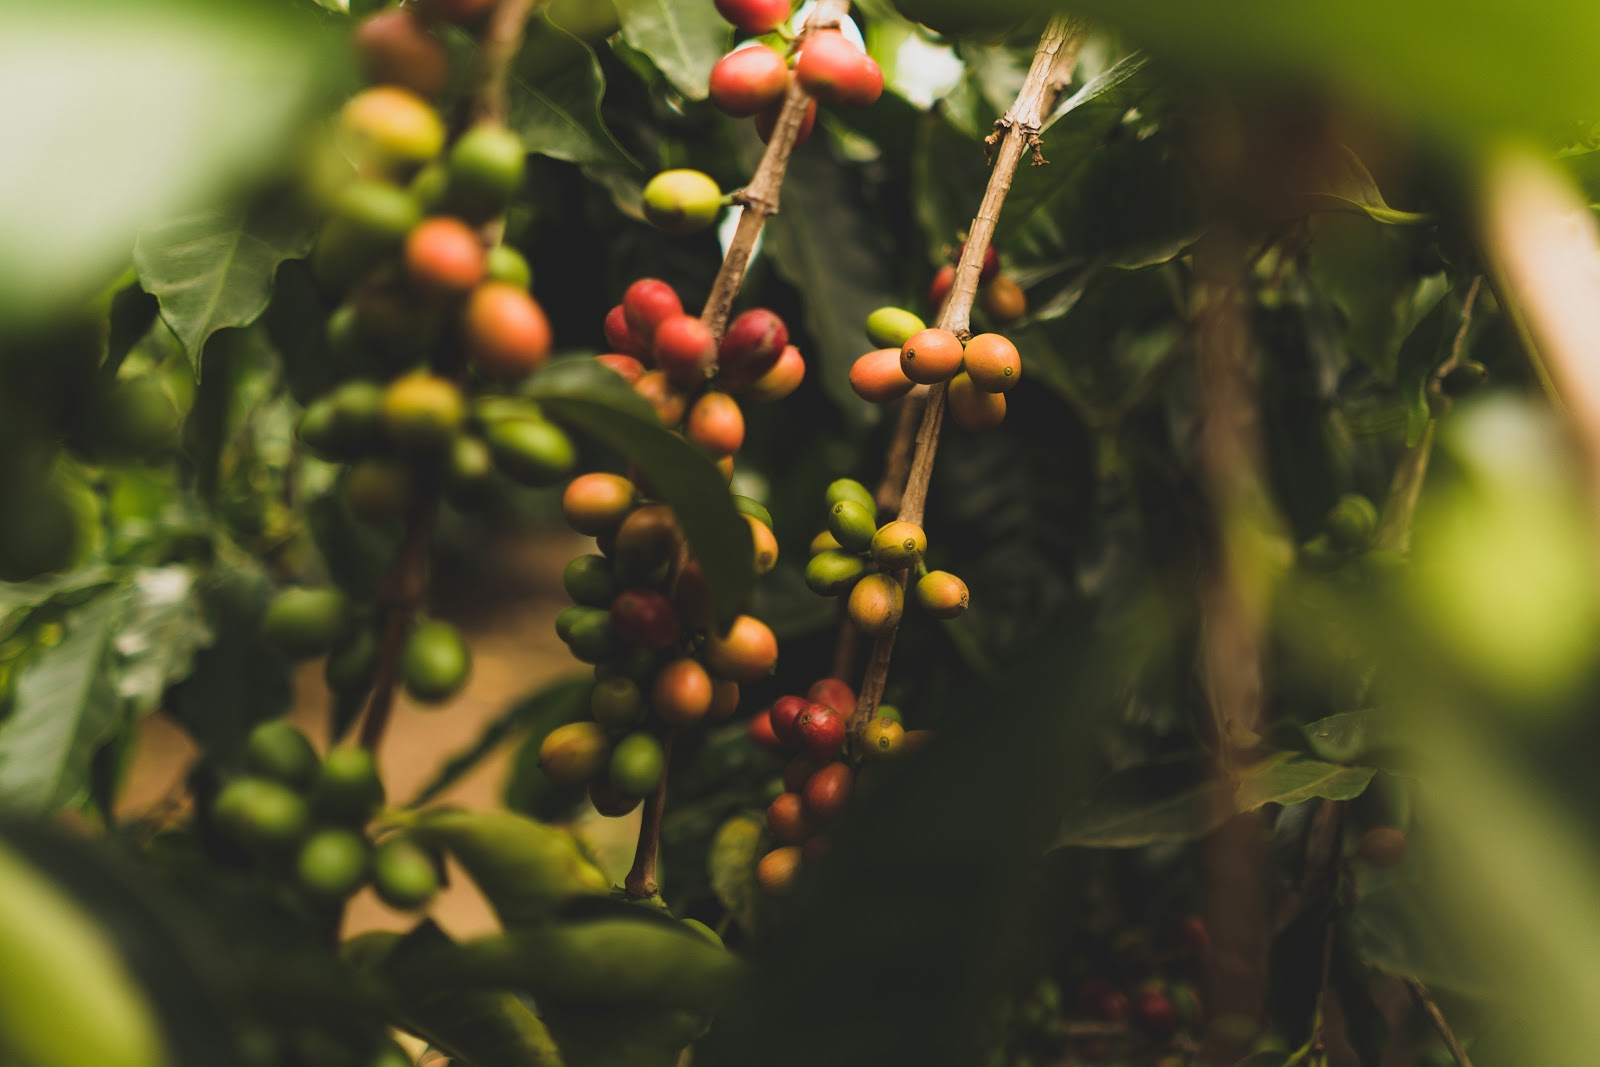 coffee cherries of different colours growing on a coffee plant